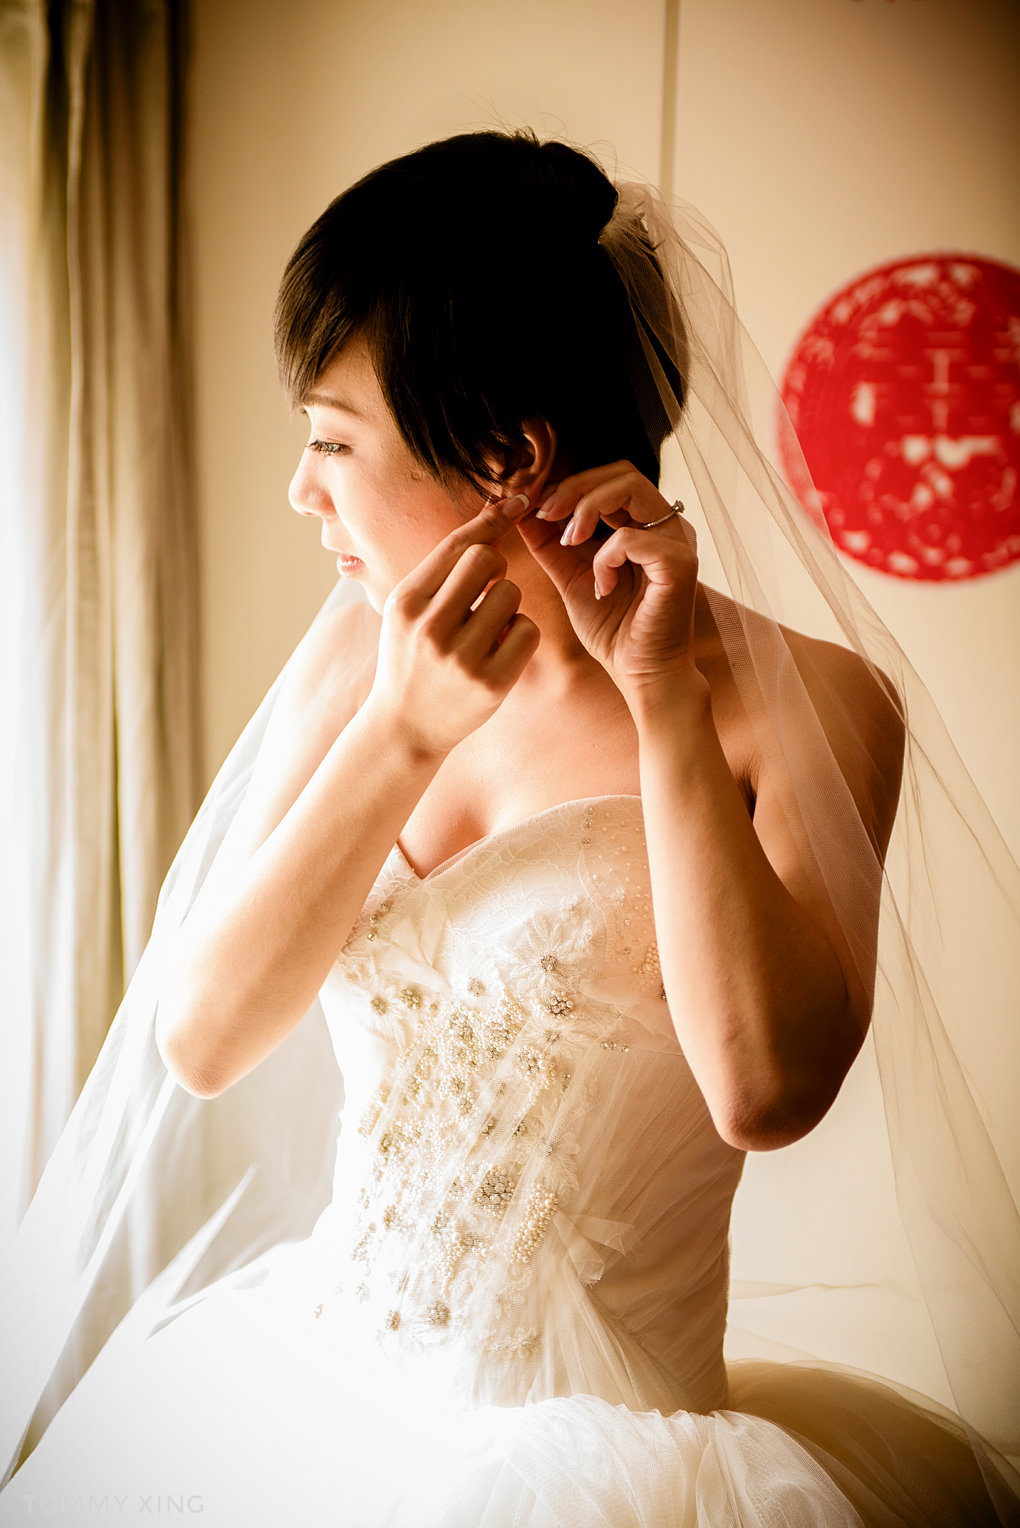 IL CIELO WEDDING Beverly Hills by Tommy Xing Photography 018.jpg